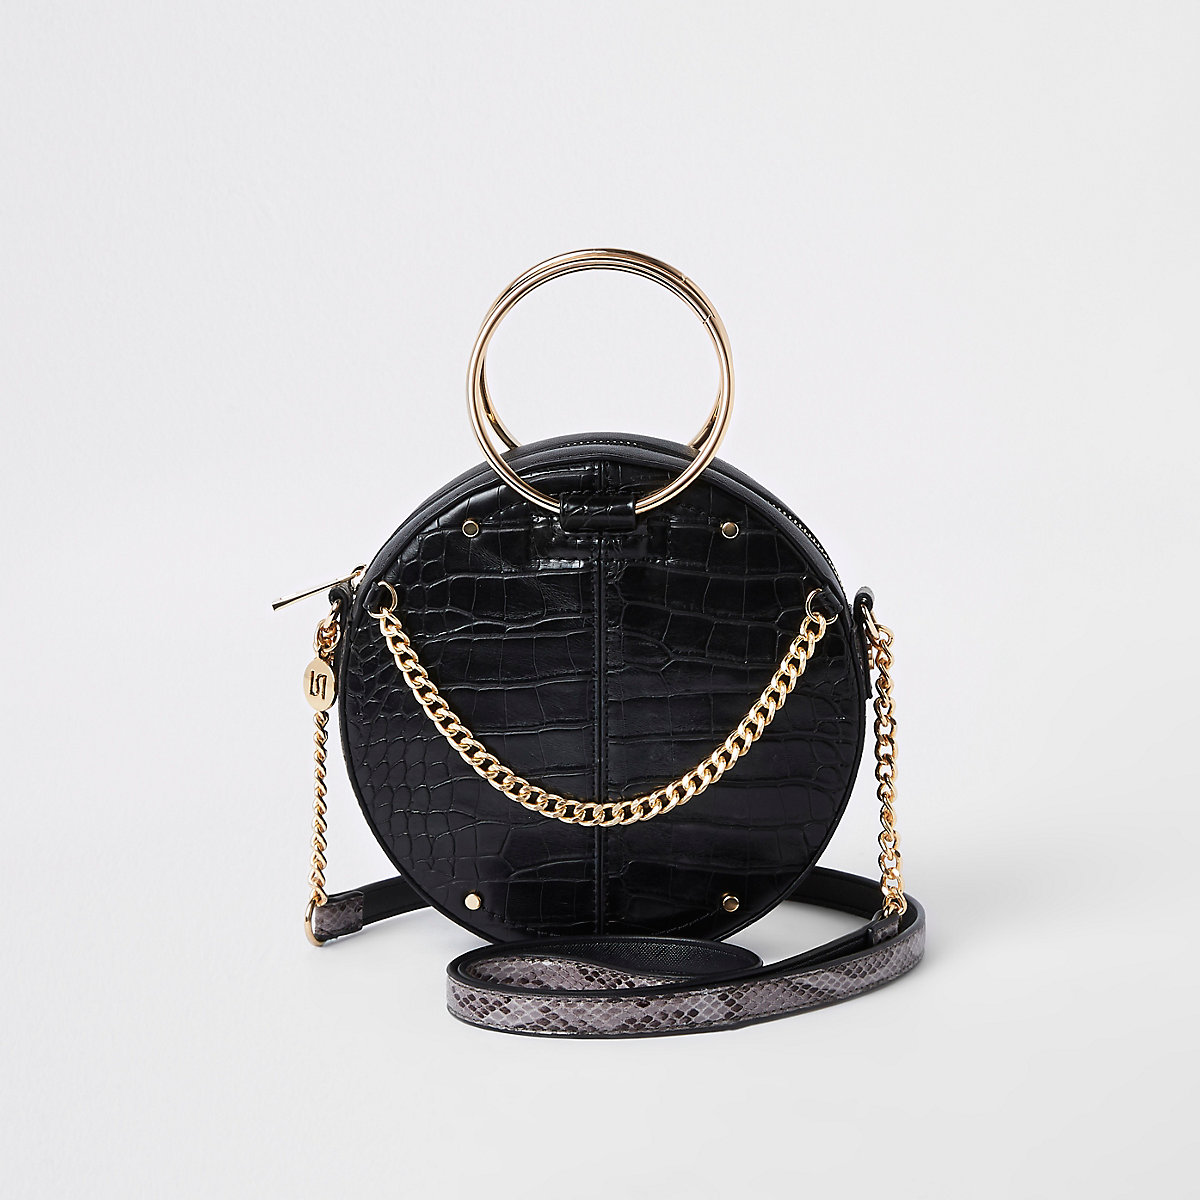 Black croc ring handle circle cross body bag